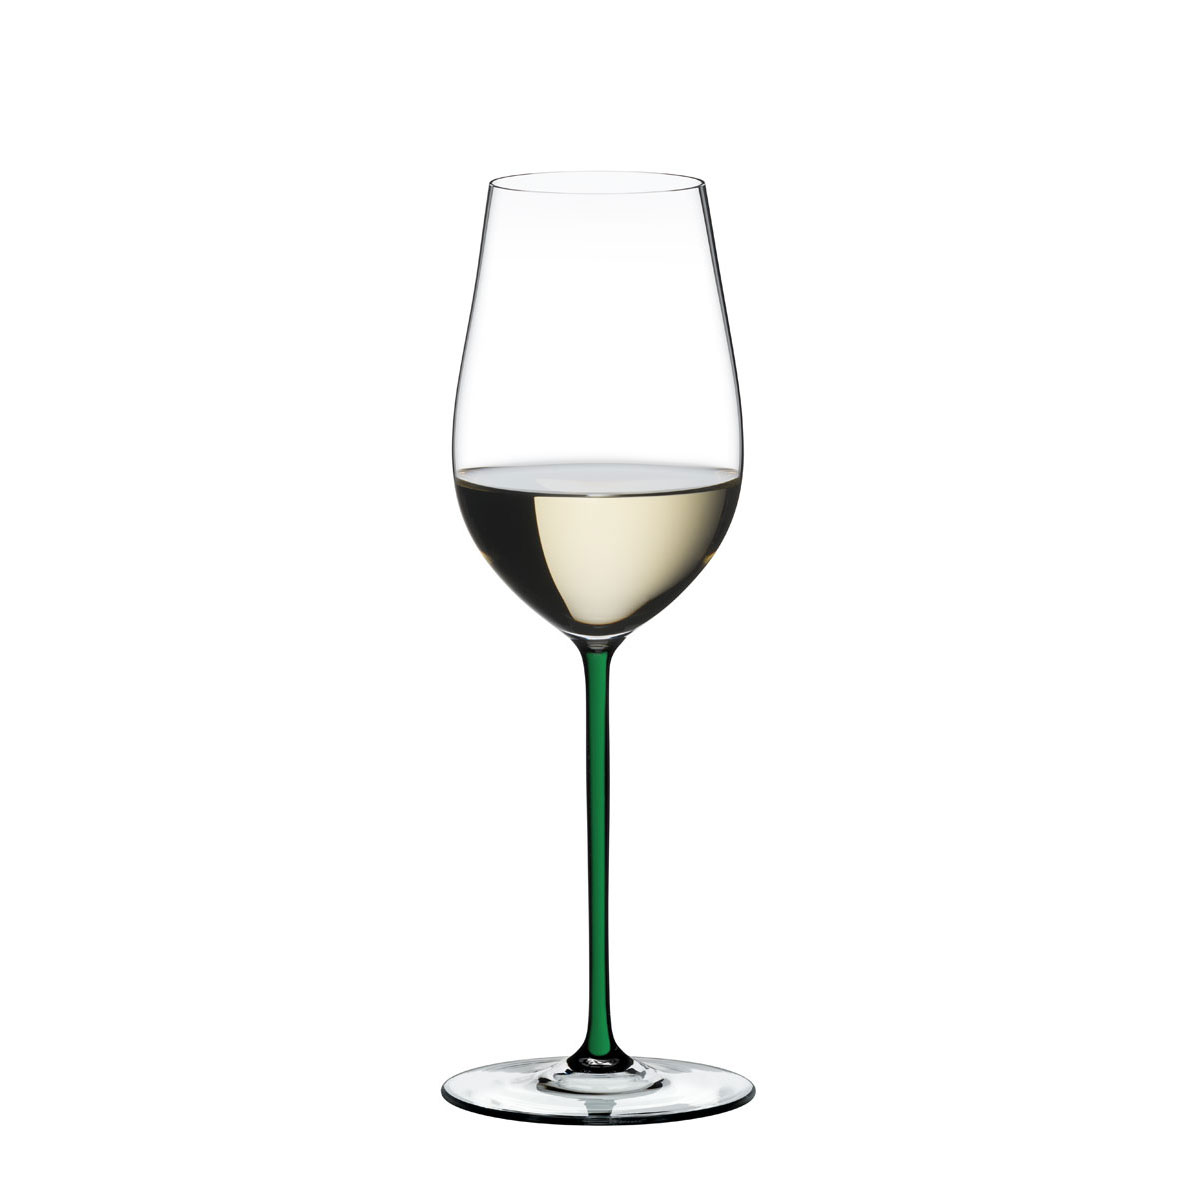 Riedel Fatto A Mano, Riesling, Zinfandel Crystal Wine Glass, Green